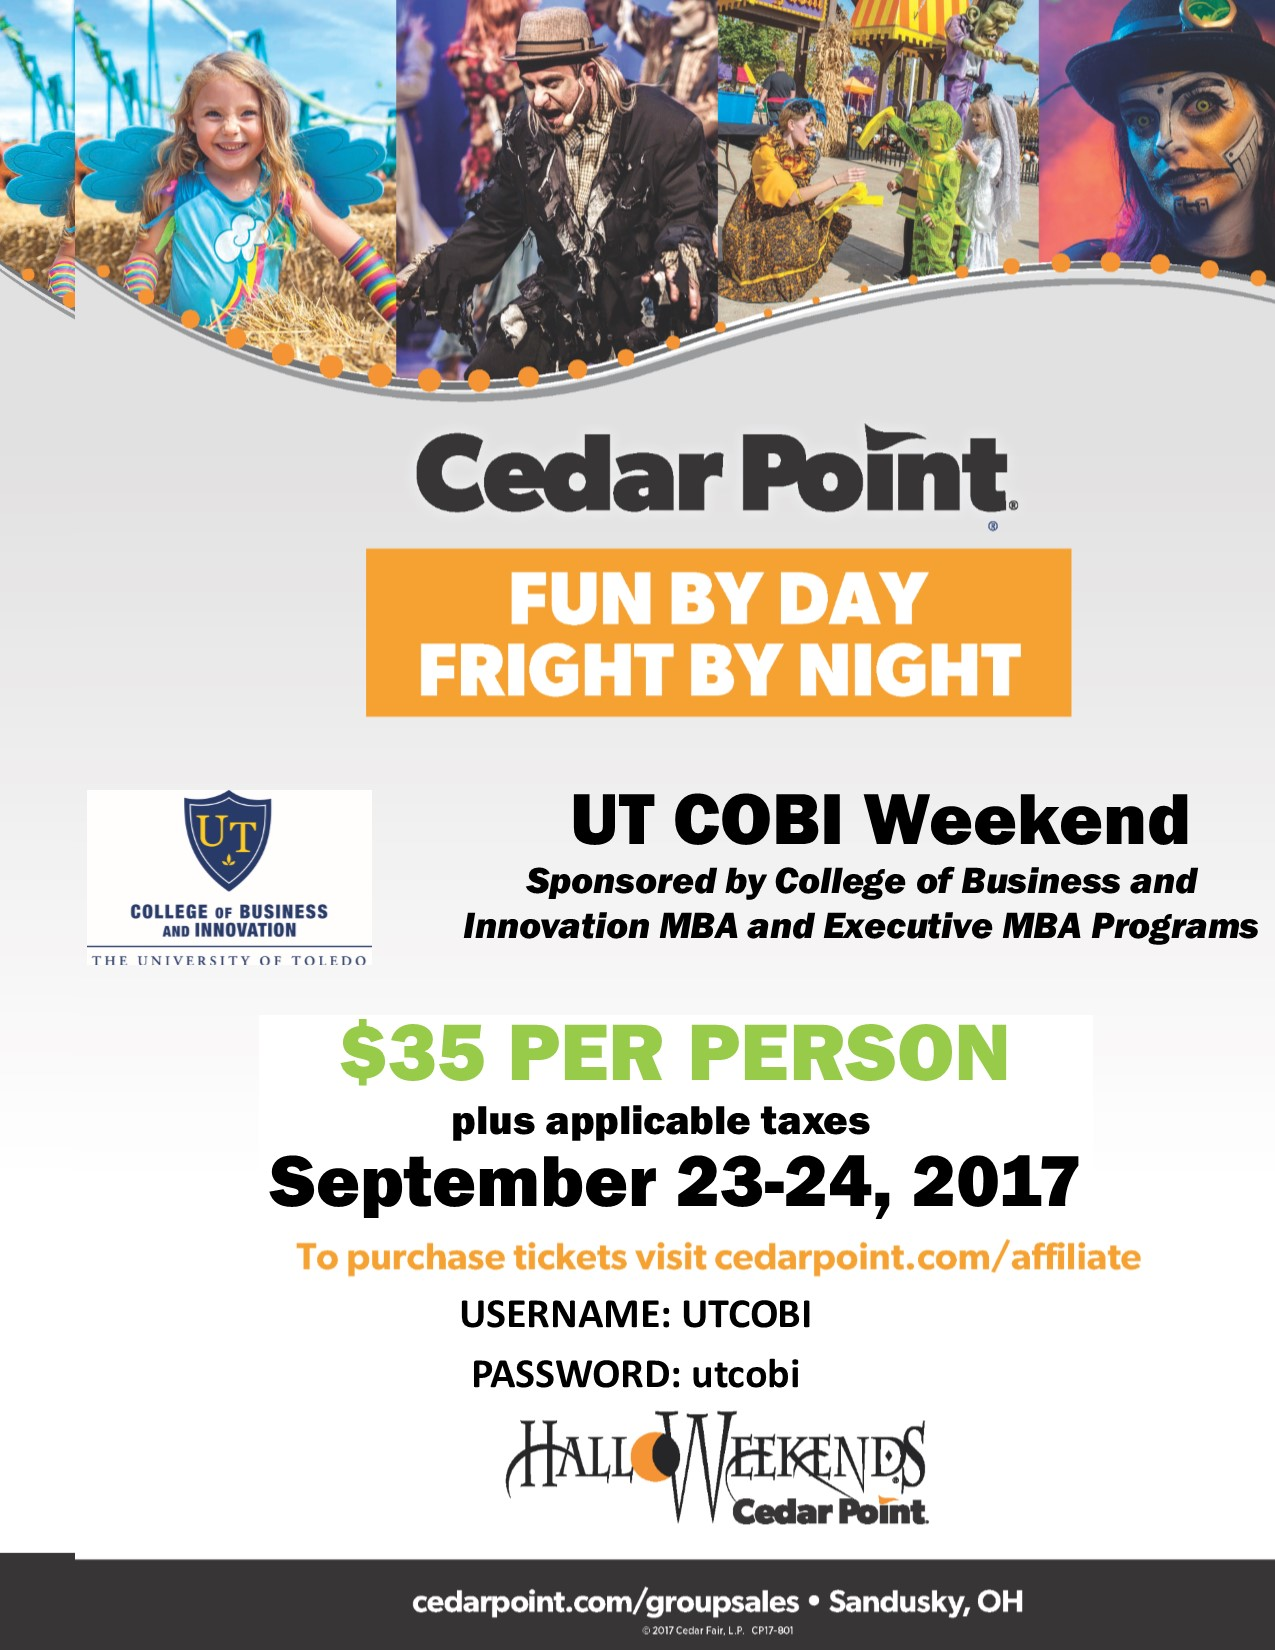 Djj business link agcguru info -  Ut College Of Business And Innovation Arranges For Special Price On Cedar Point Tickets